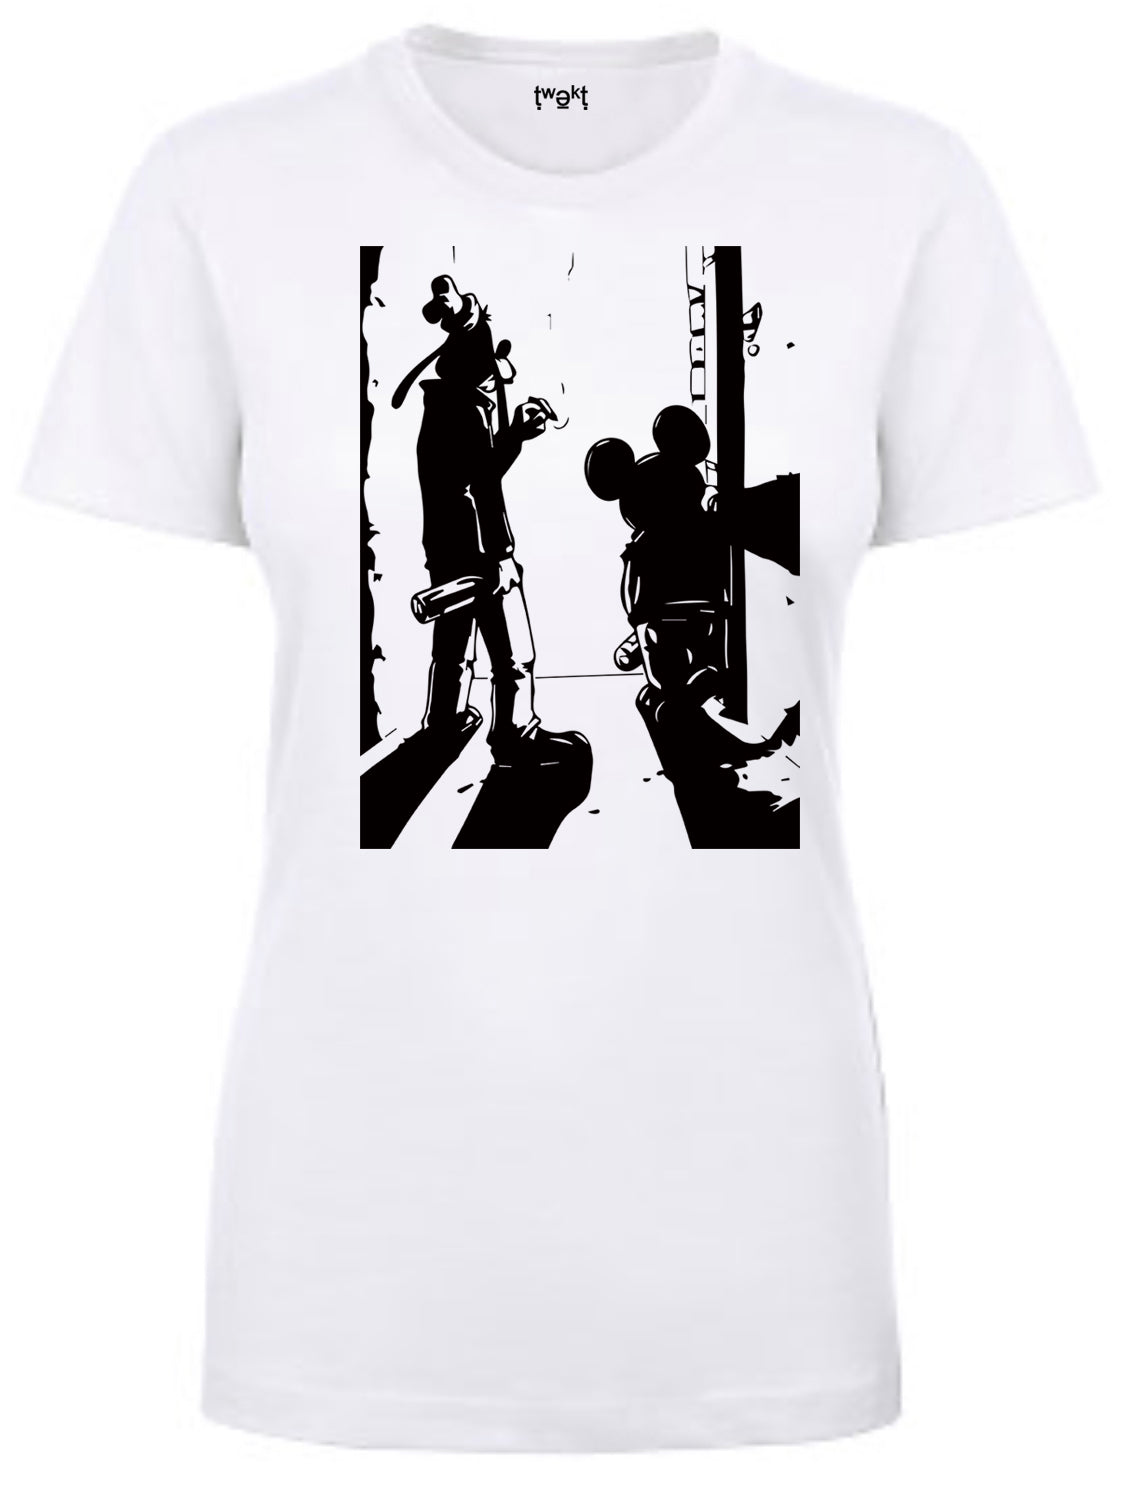 Playaz Women T-shirt